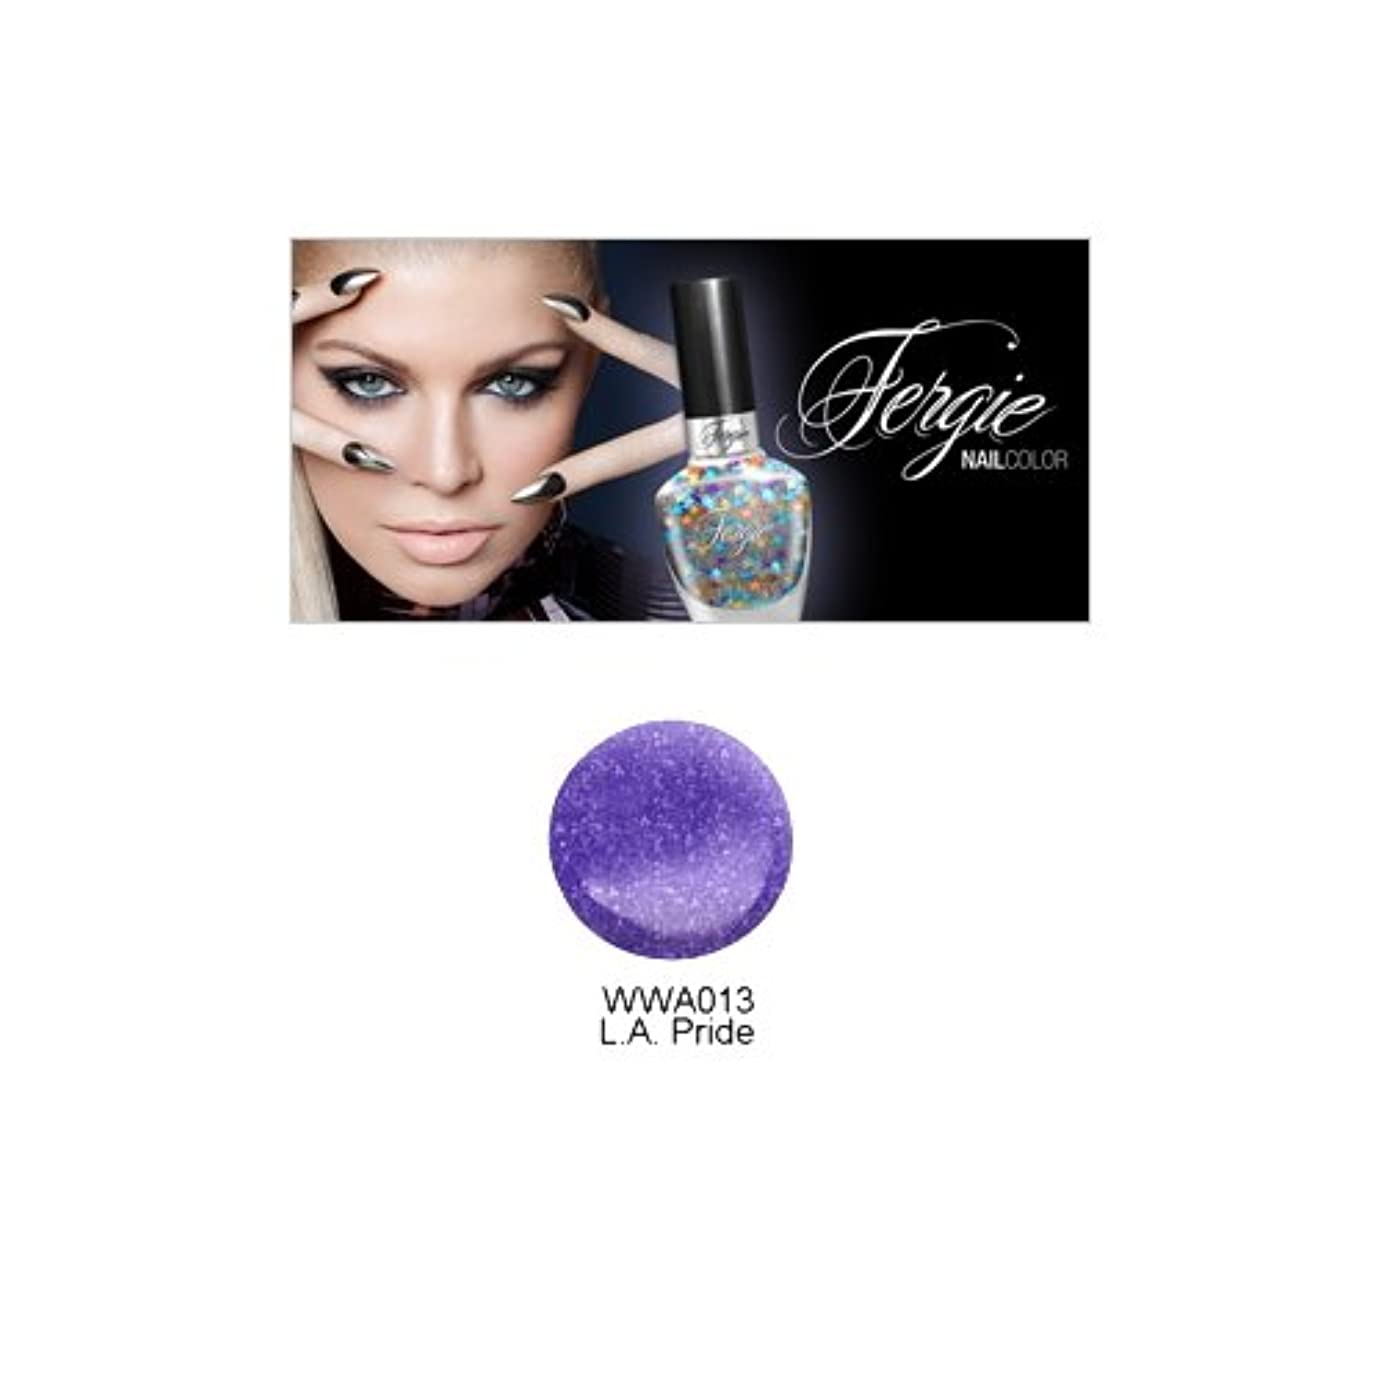 毒キャンベラ焼く(3 Pack) Wet N Wild FERGIE NAIL COLOR - L.A. Pride (DC) (並行輸入品)